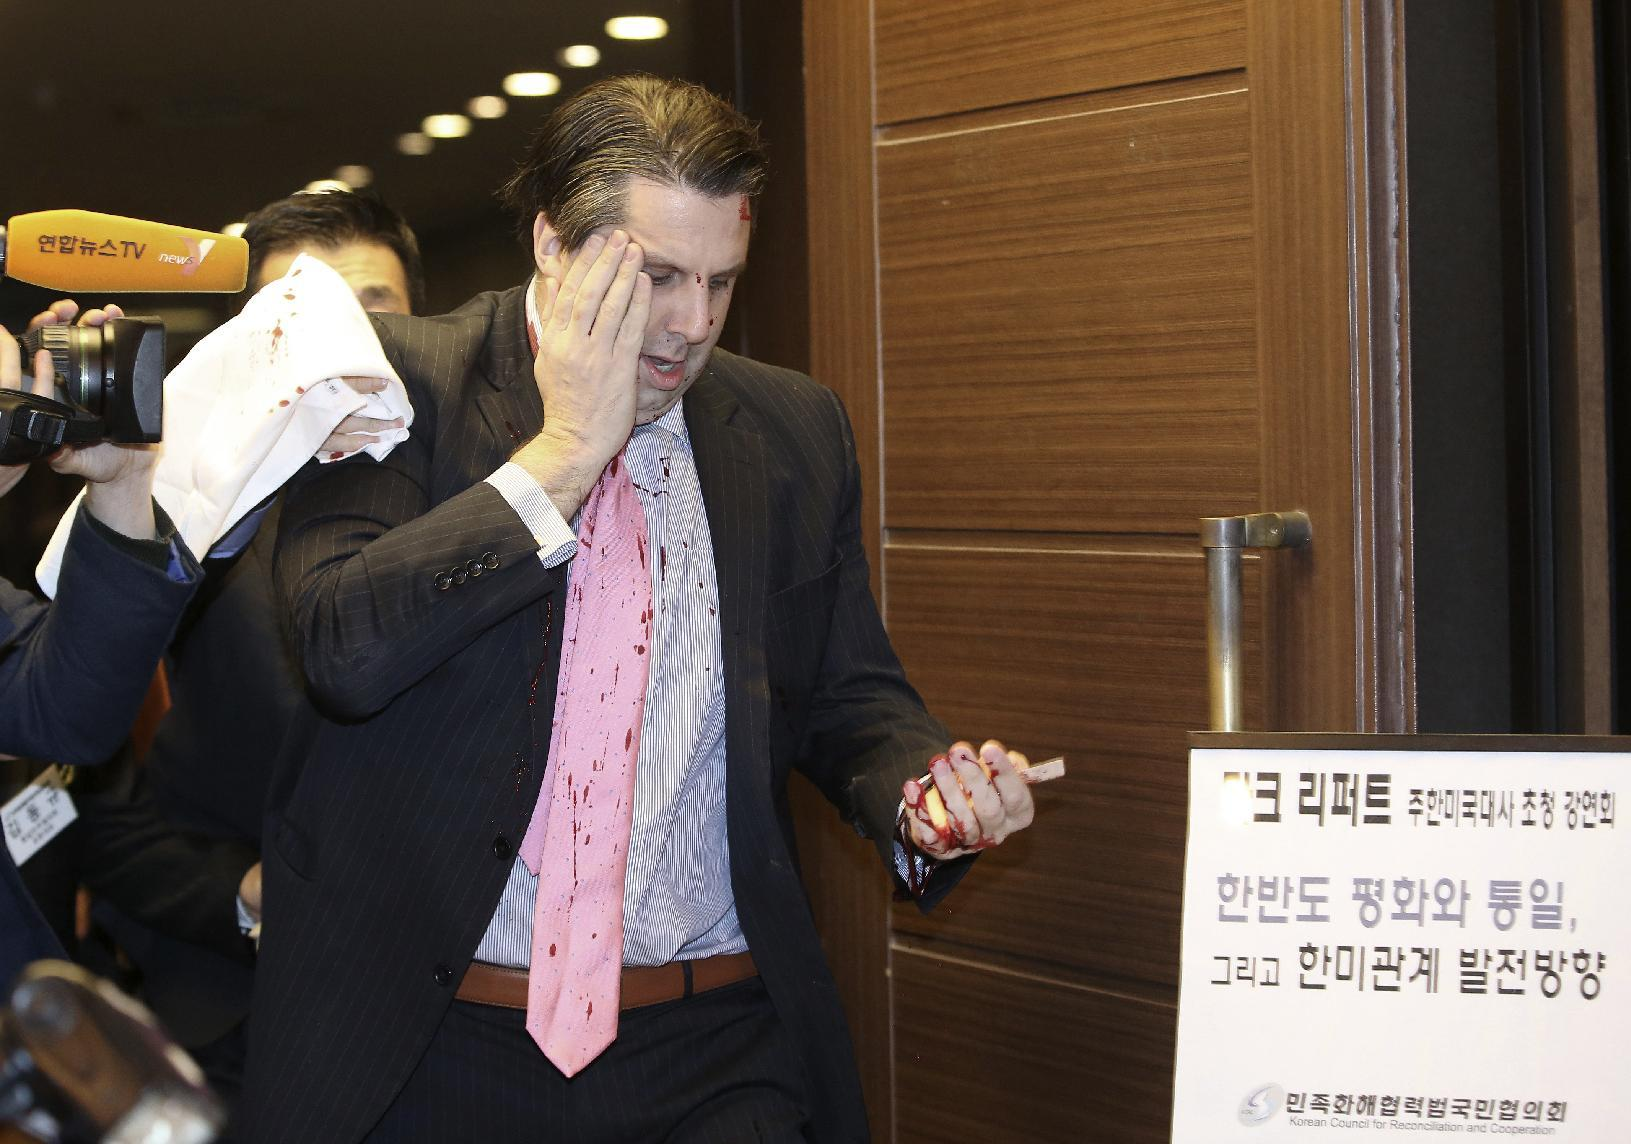 Security questioned in probe of attack on US envoy to Seoul